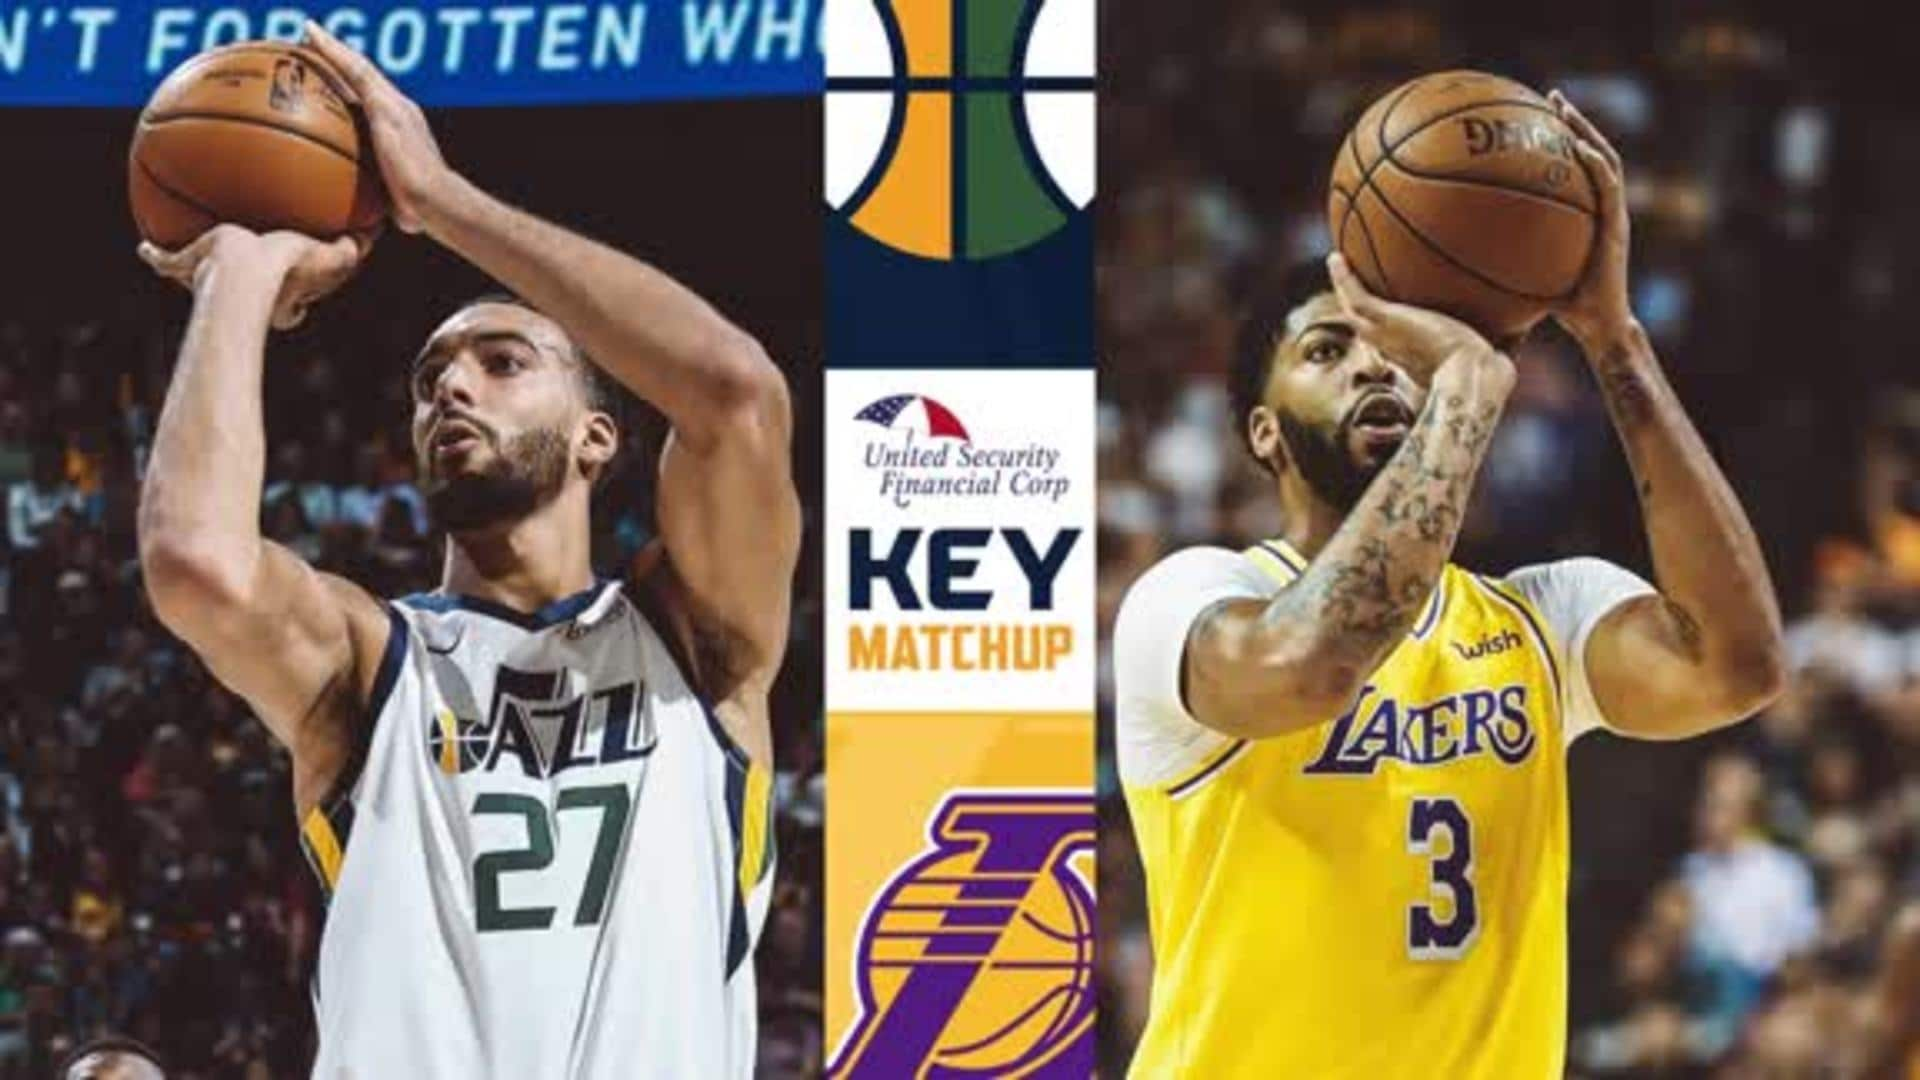 Key Matchup: Rudy Gobert vs. Anthony Davis